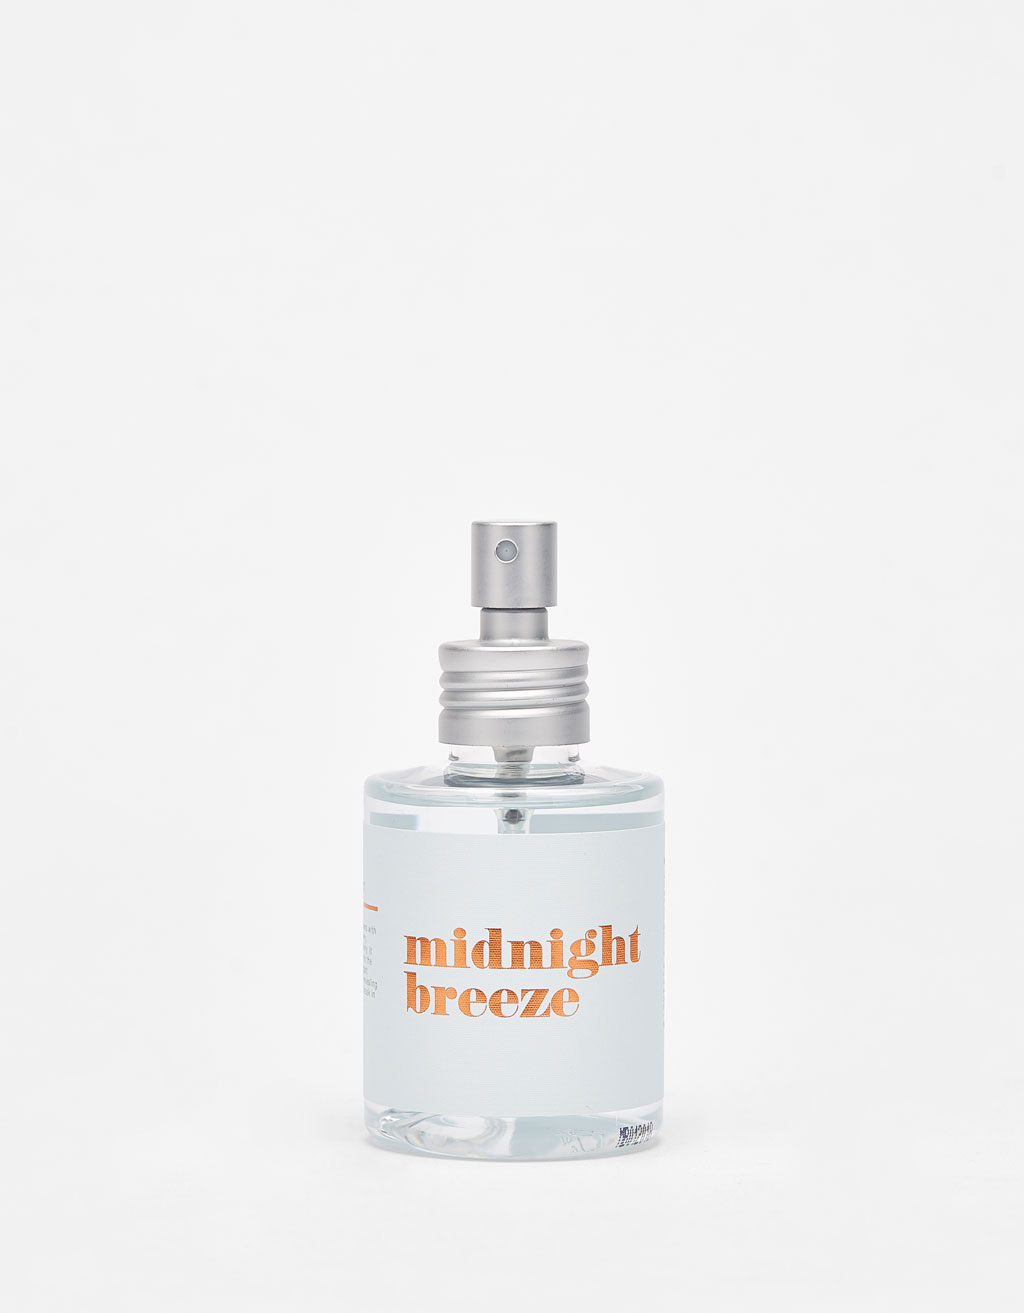 Midnight Breeze body mist 100ml